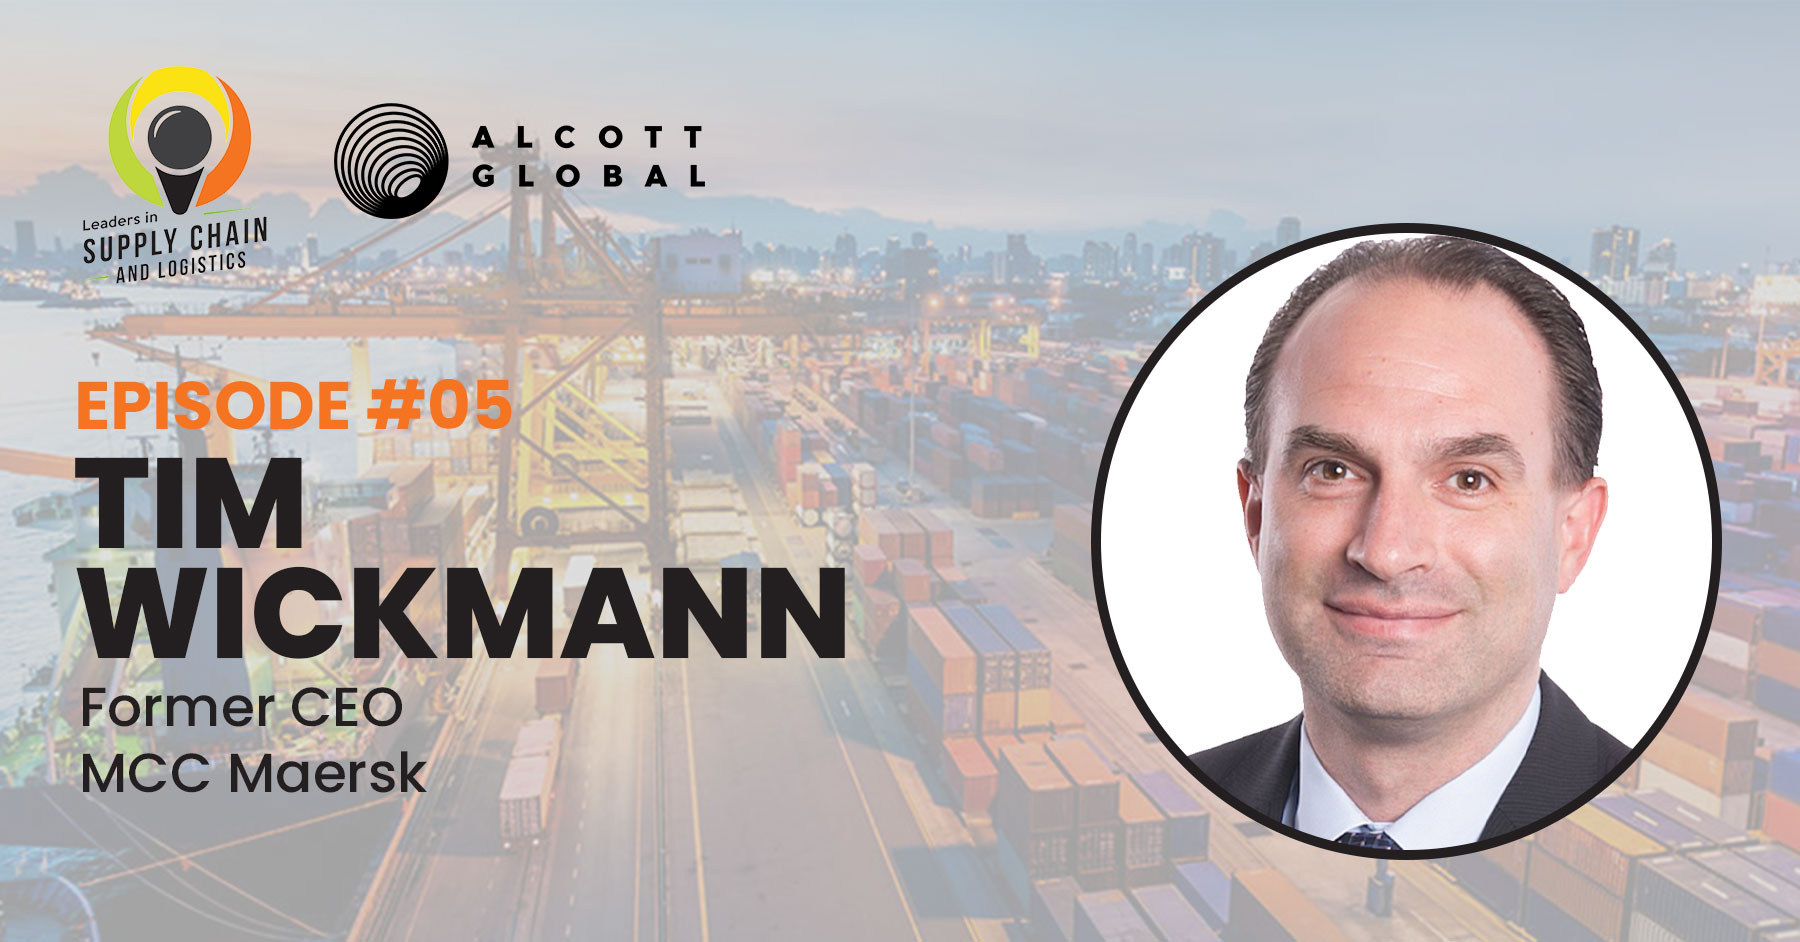 #05: Tim Wickmann former CEO of MCC Maersk Featured Image